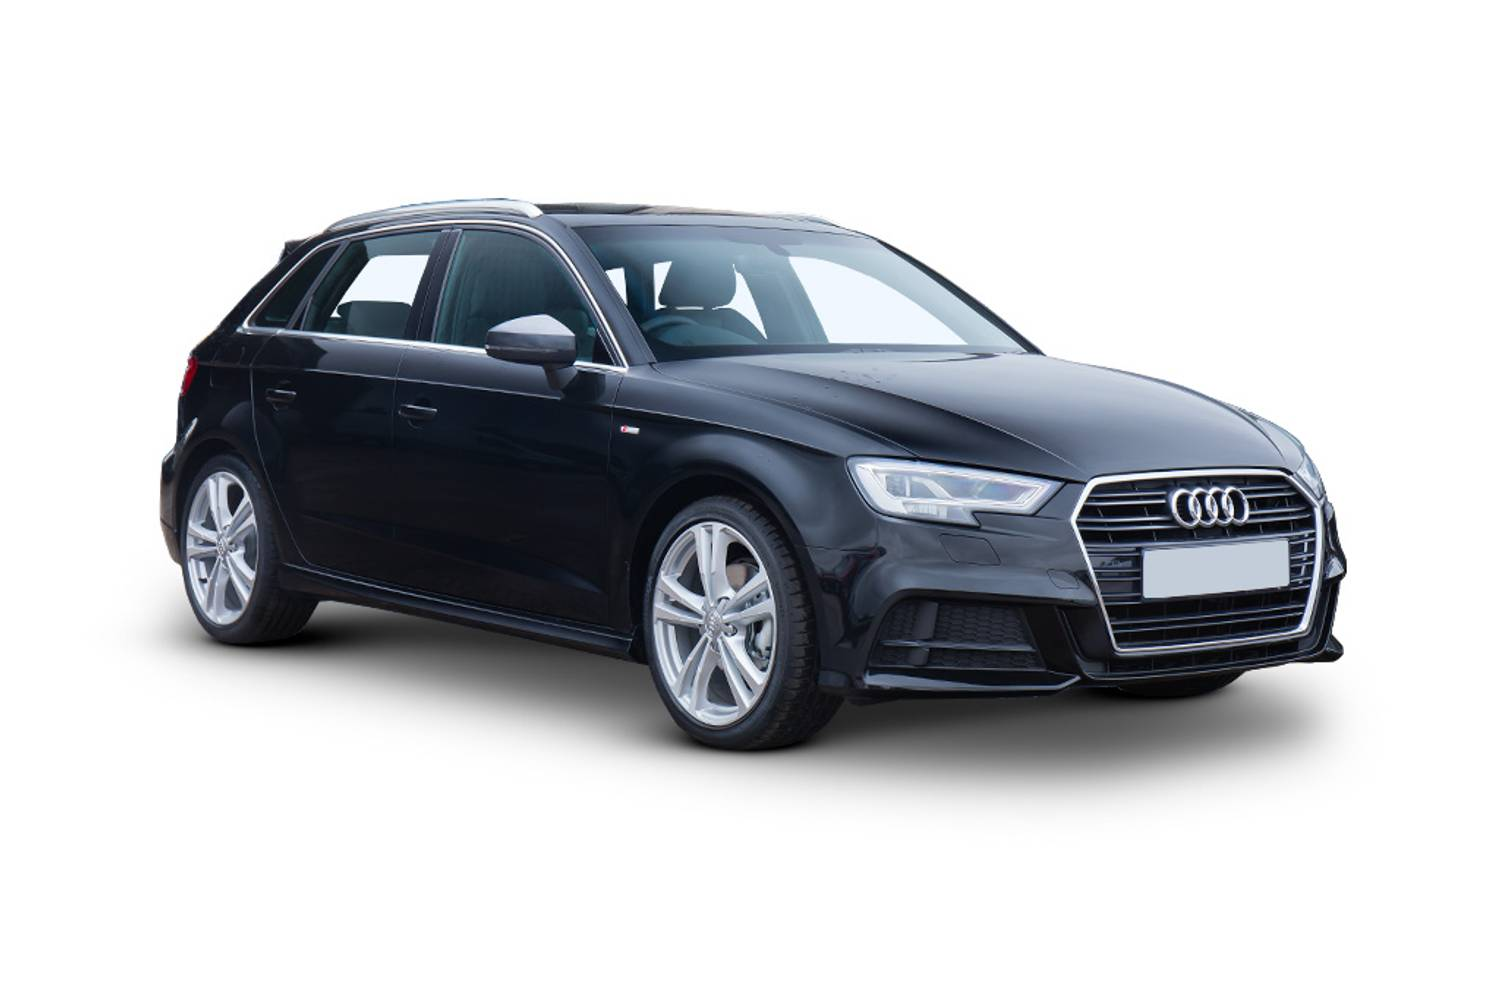 new audi a3 sportback 1 4 tfsi se 5 door s tronic 2016 for sale. Black Bedroom Furniture Sets. Home Design Ideas